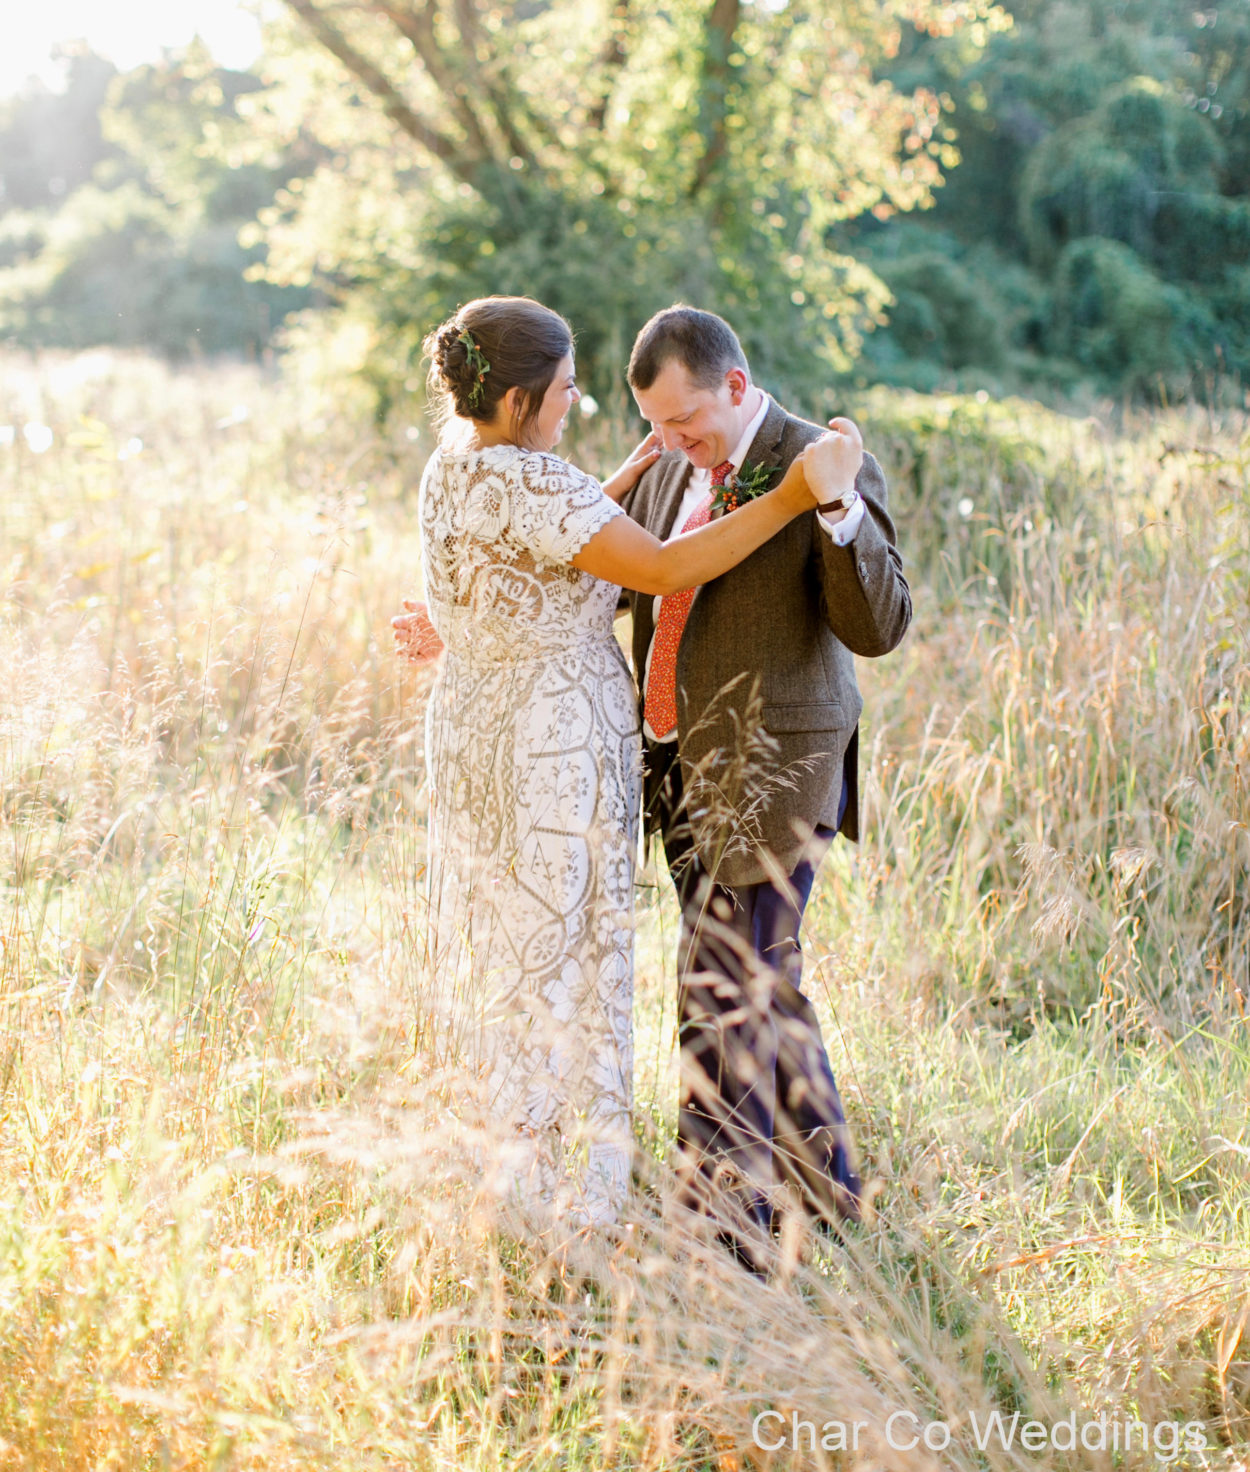 View More: http://char-co.pass.us/laura-alex-wedding